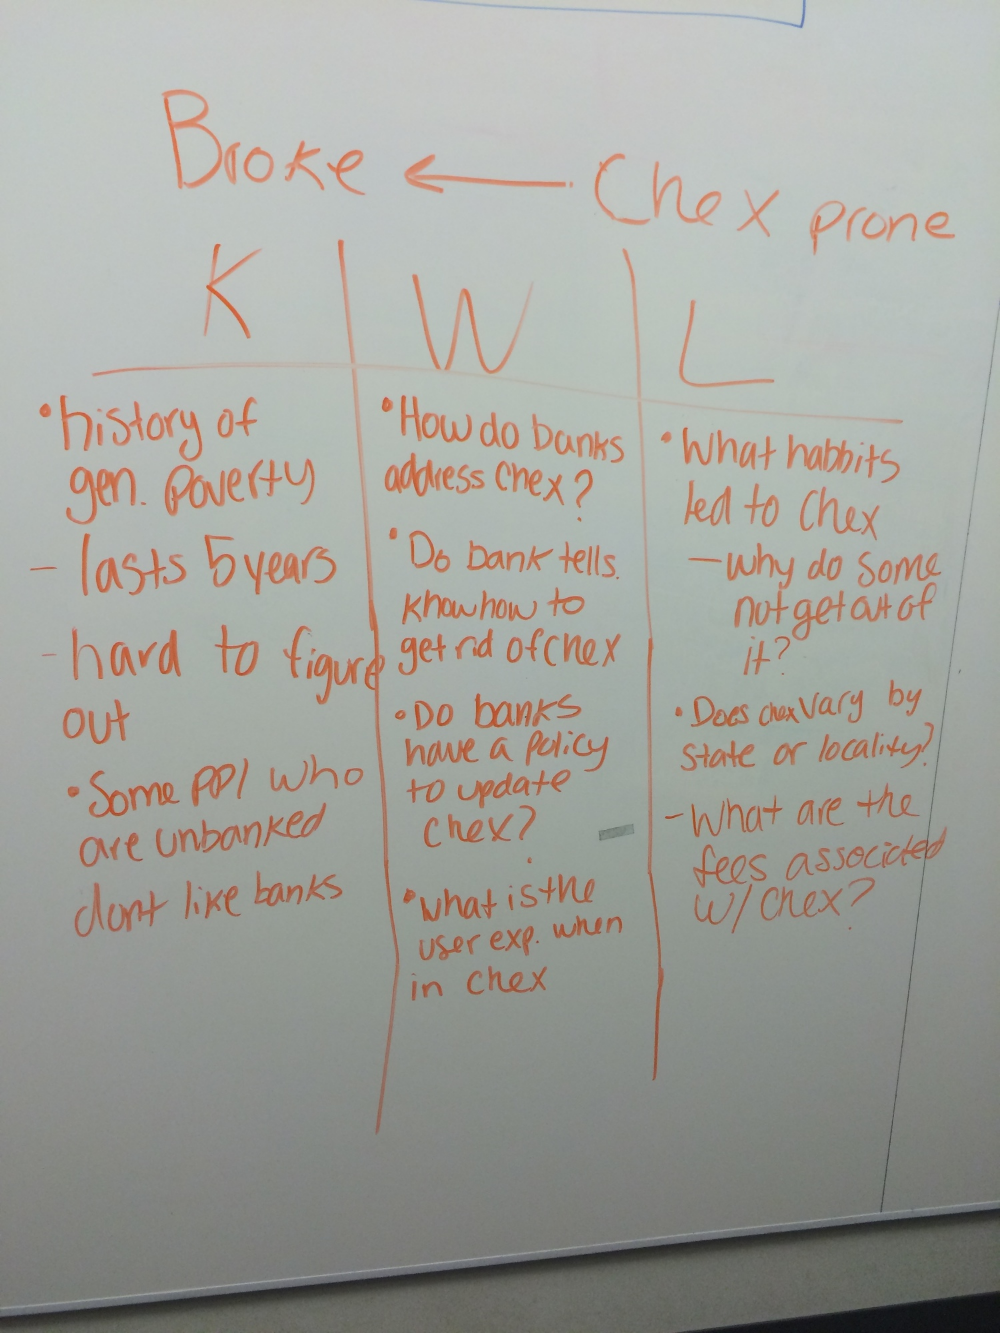 Utilizing the KWL (Know-Want-Learned) Matrix to define what we want to learn next.